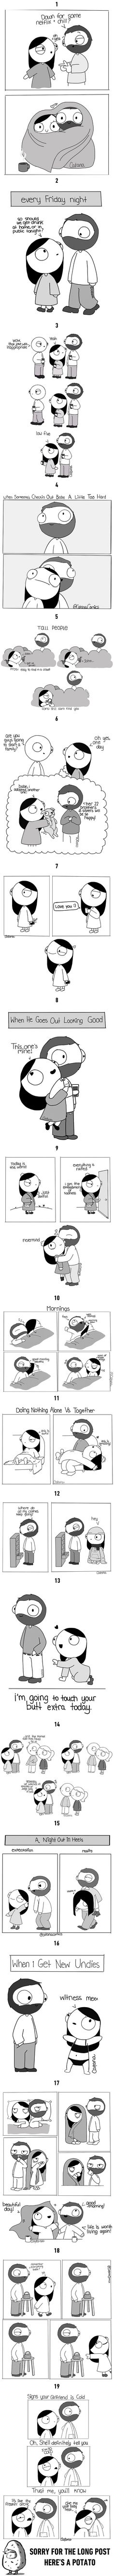 19 comics that are the definition of relationship goals